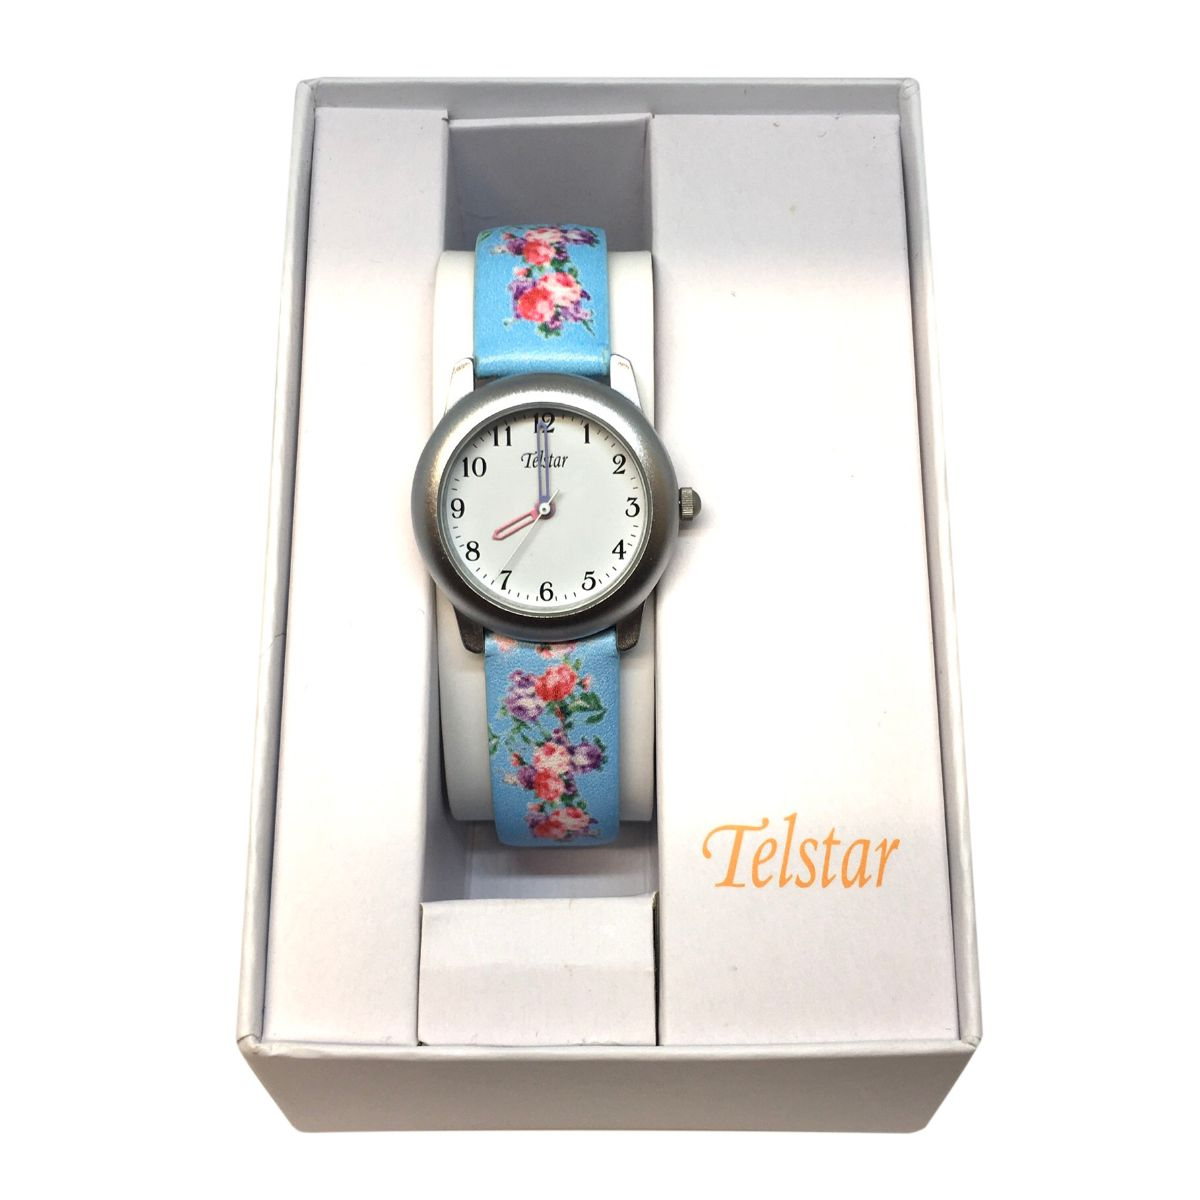 Telstar Watch With Floral Strap Design - Blue Colour - Gift Boxed